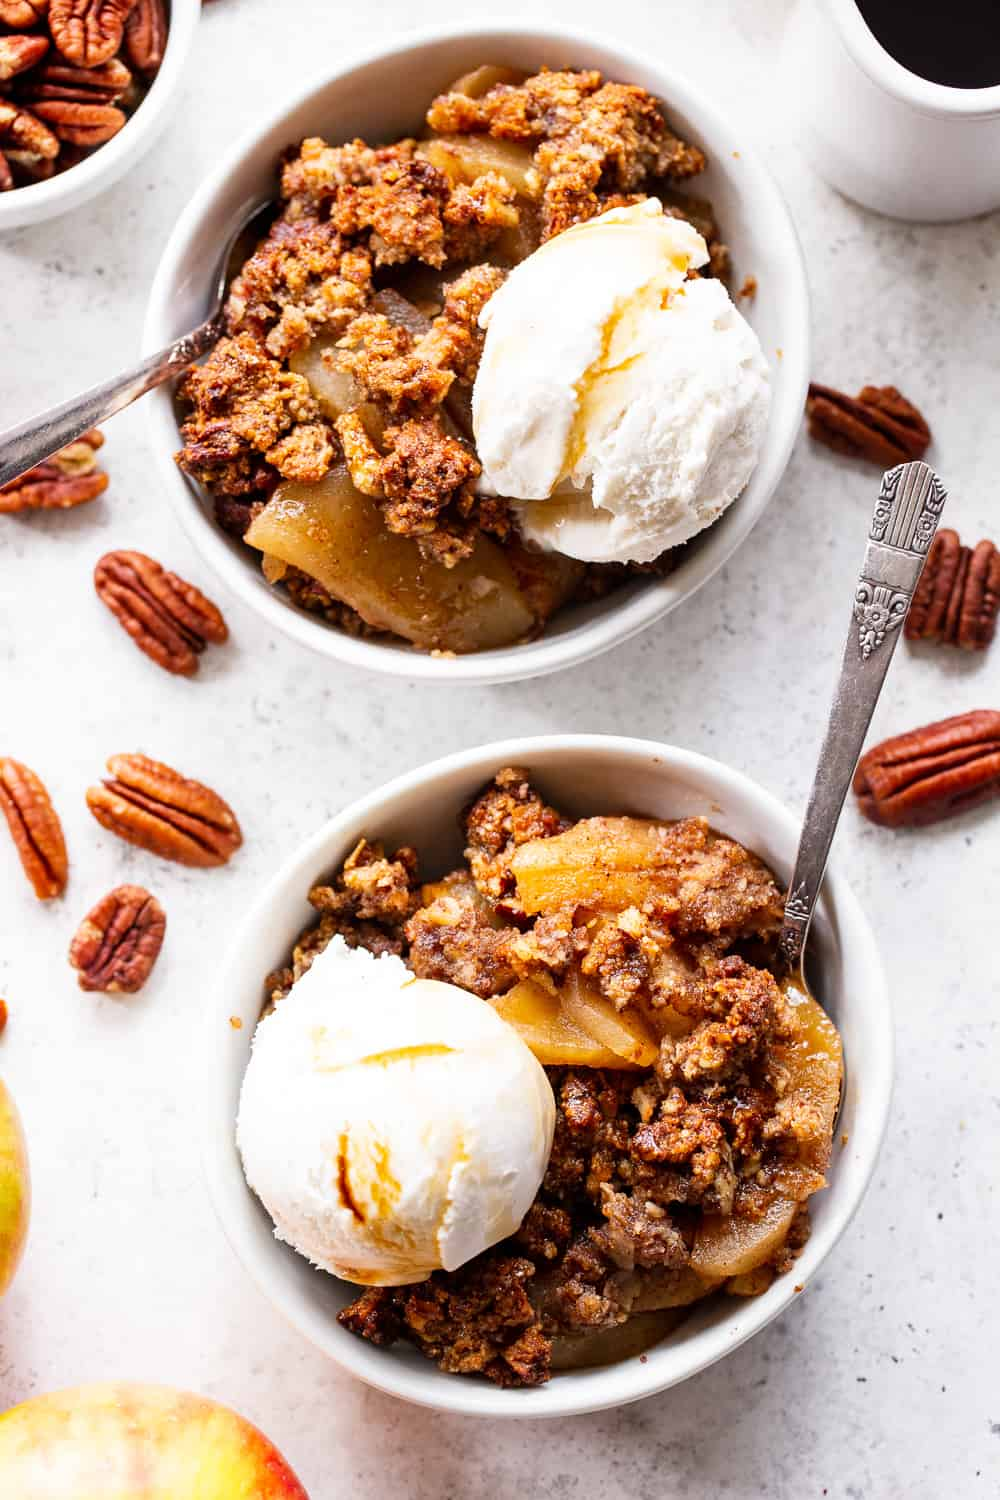 A healthy version of a classic fall dessert, this Paleo Maple Pecan Apple Crisp is the perfect warm and sweet comfort food on cozy nights. It's grain free, gluten free, paleo, vegan, and soy free with simple whole ingredients and the fall flavors you crave. #paleo #vegan #cleaneating #applecrisp #healthybaking